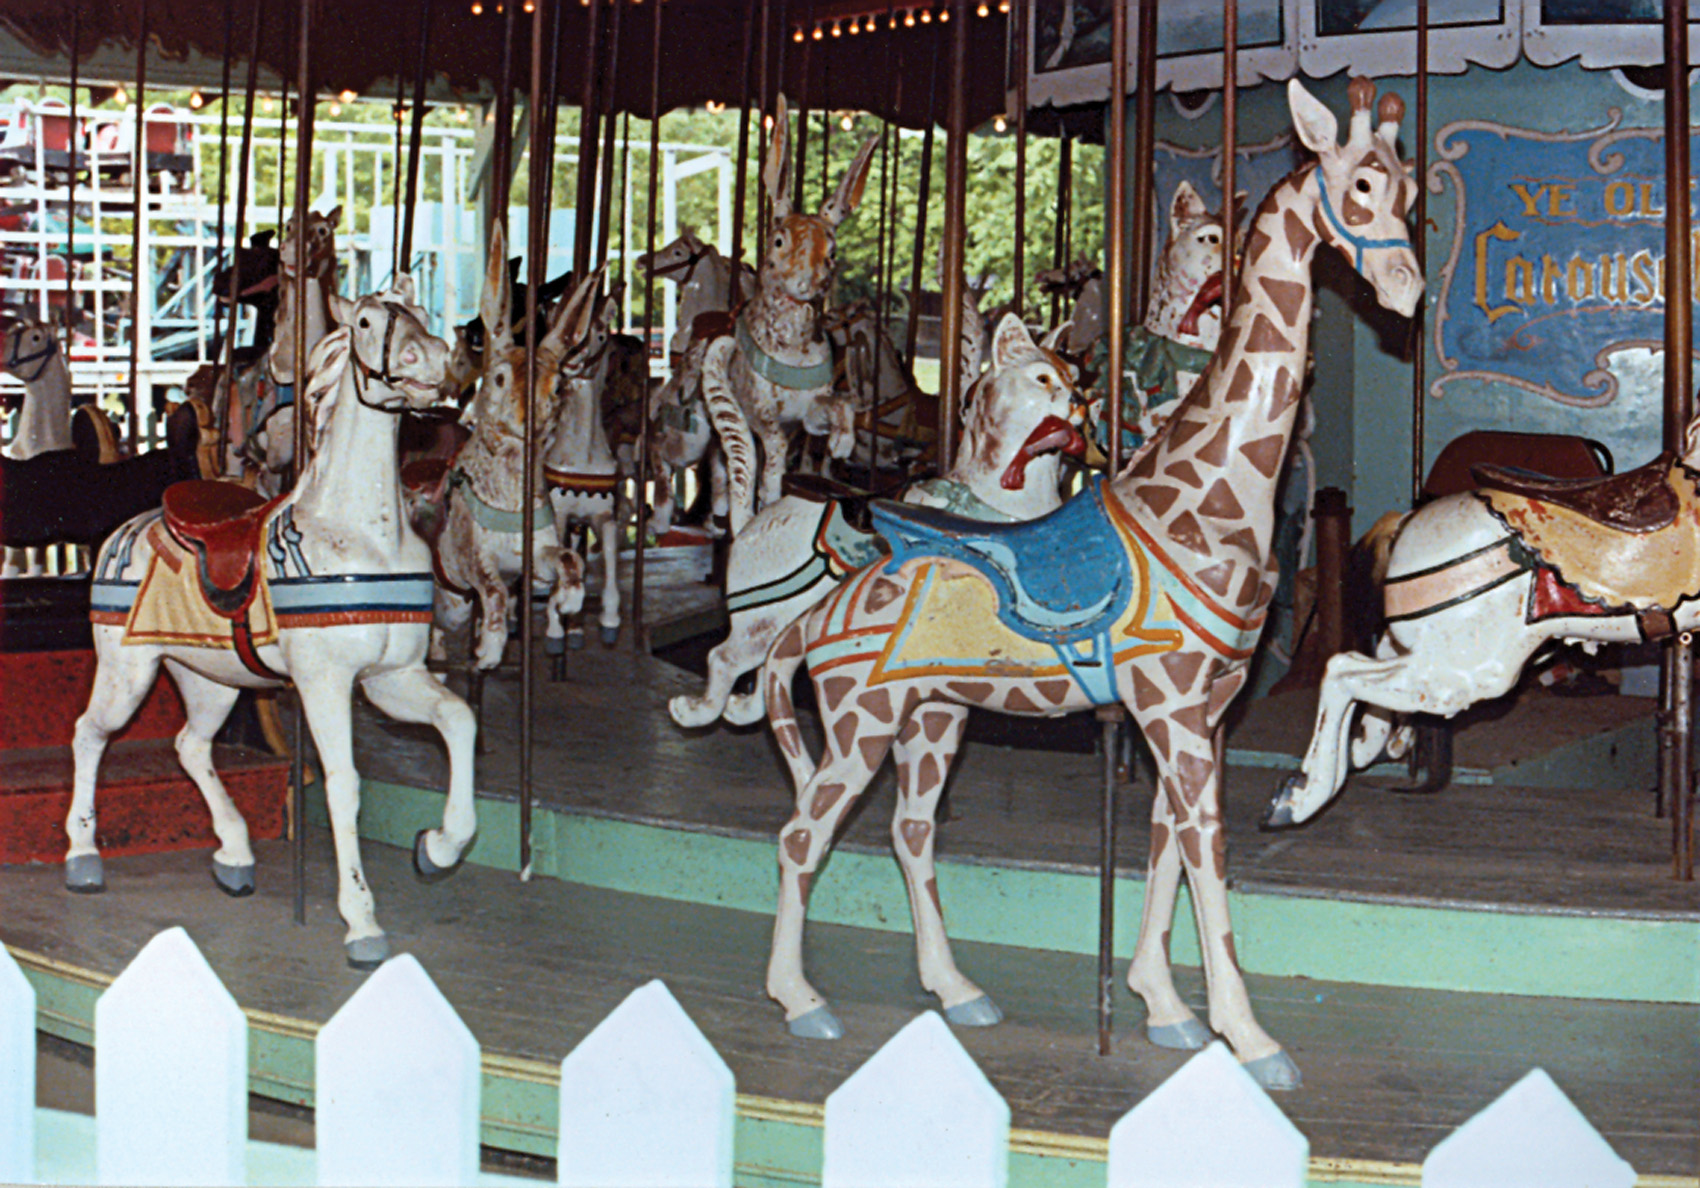 Beech-Bend-park-Dentzel-menagerie-carousel-4-Farnsworth-photo